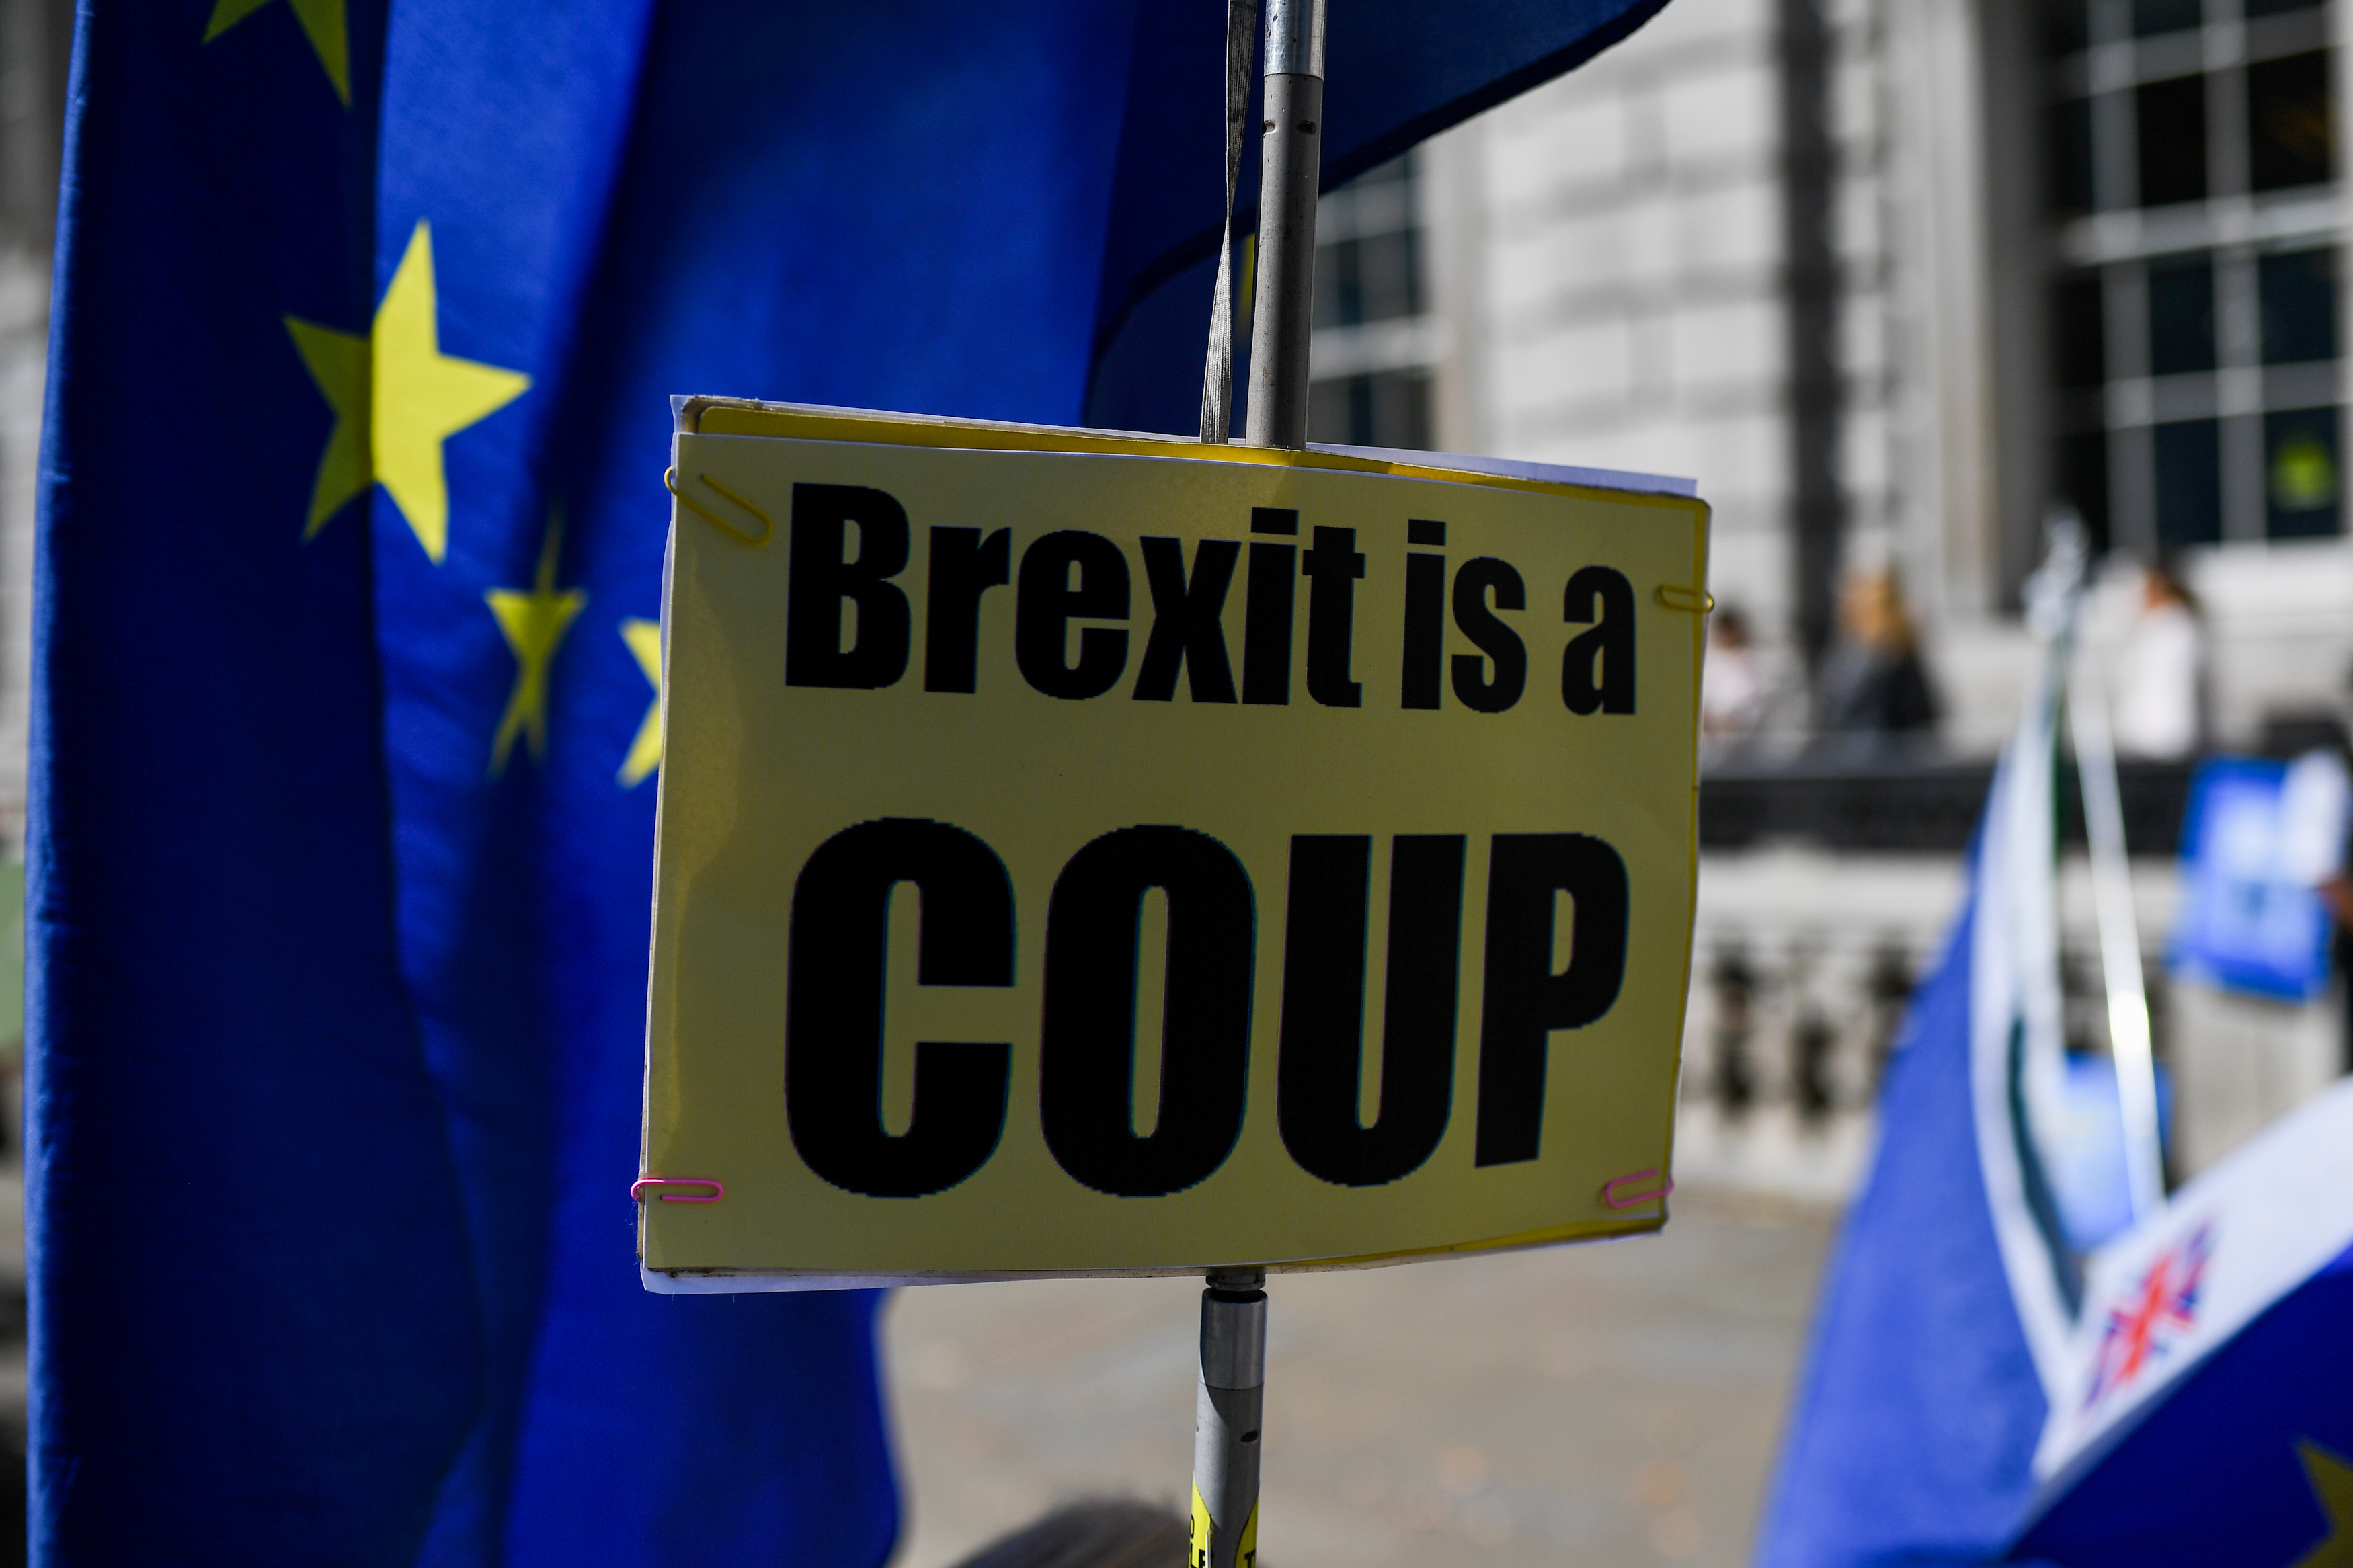 Demonstrators gather outside Cabinet Office waving Union and EU flags to protest against the Parliament suspension, Central London on August 29, 2019. Parliament will be suspended just days after MPs return to work in September - and only a few weeks before the Brexit deadline. (Photo by Alberto Pezzali/NurPhoto via Getty Images)